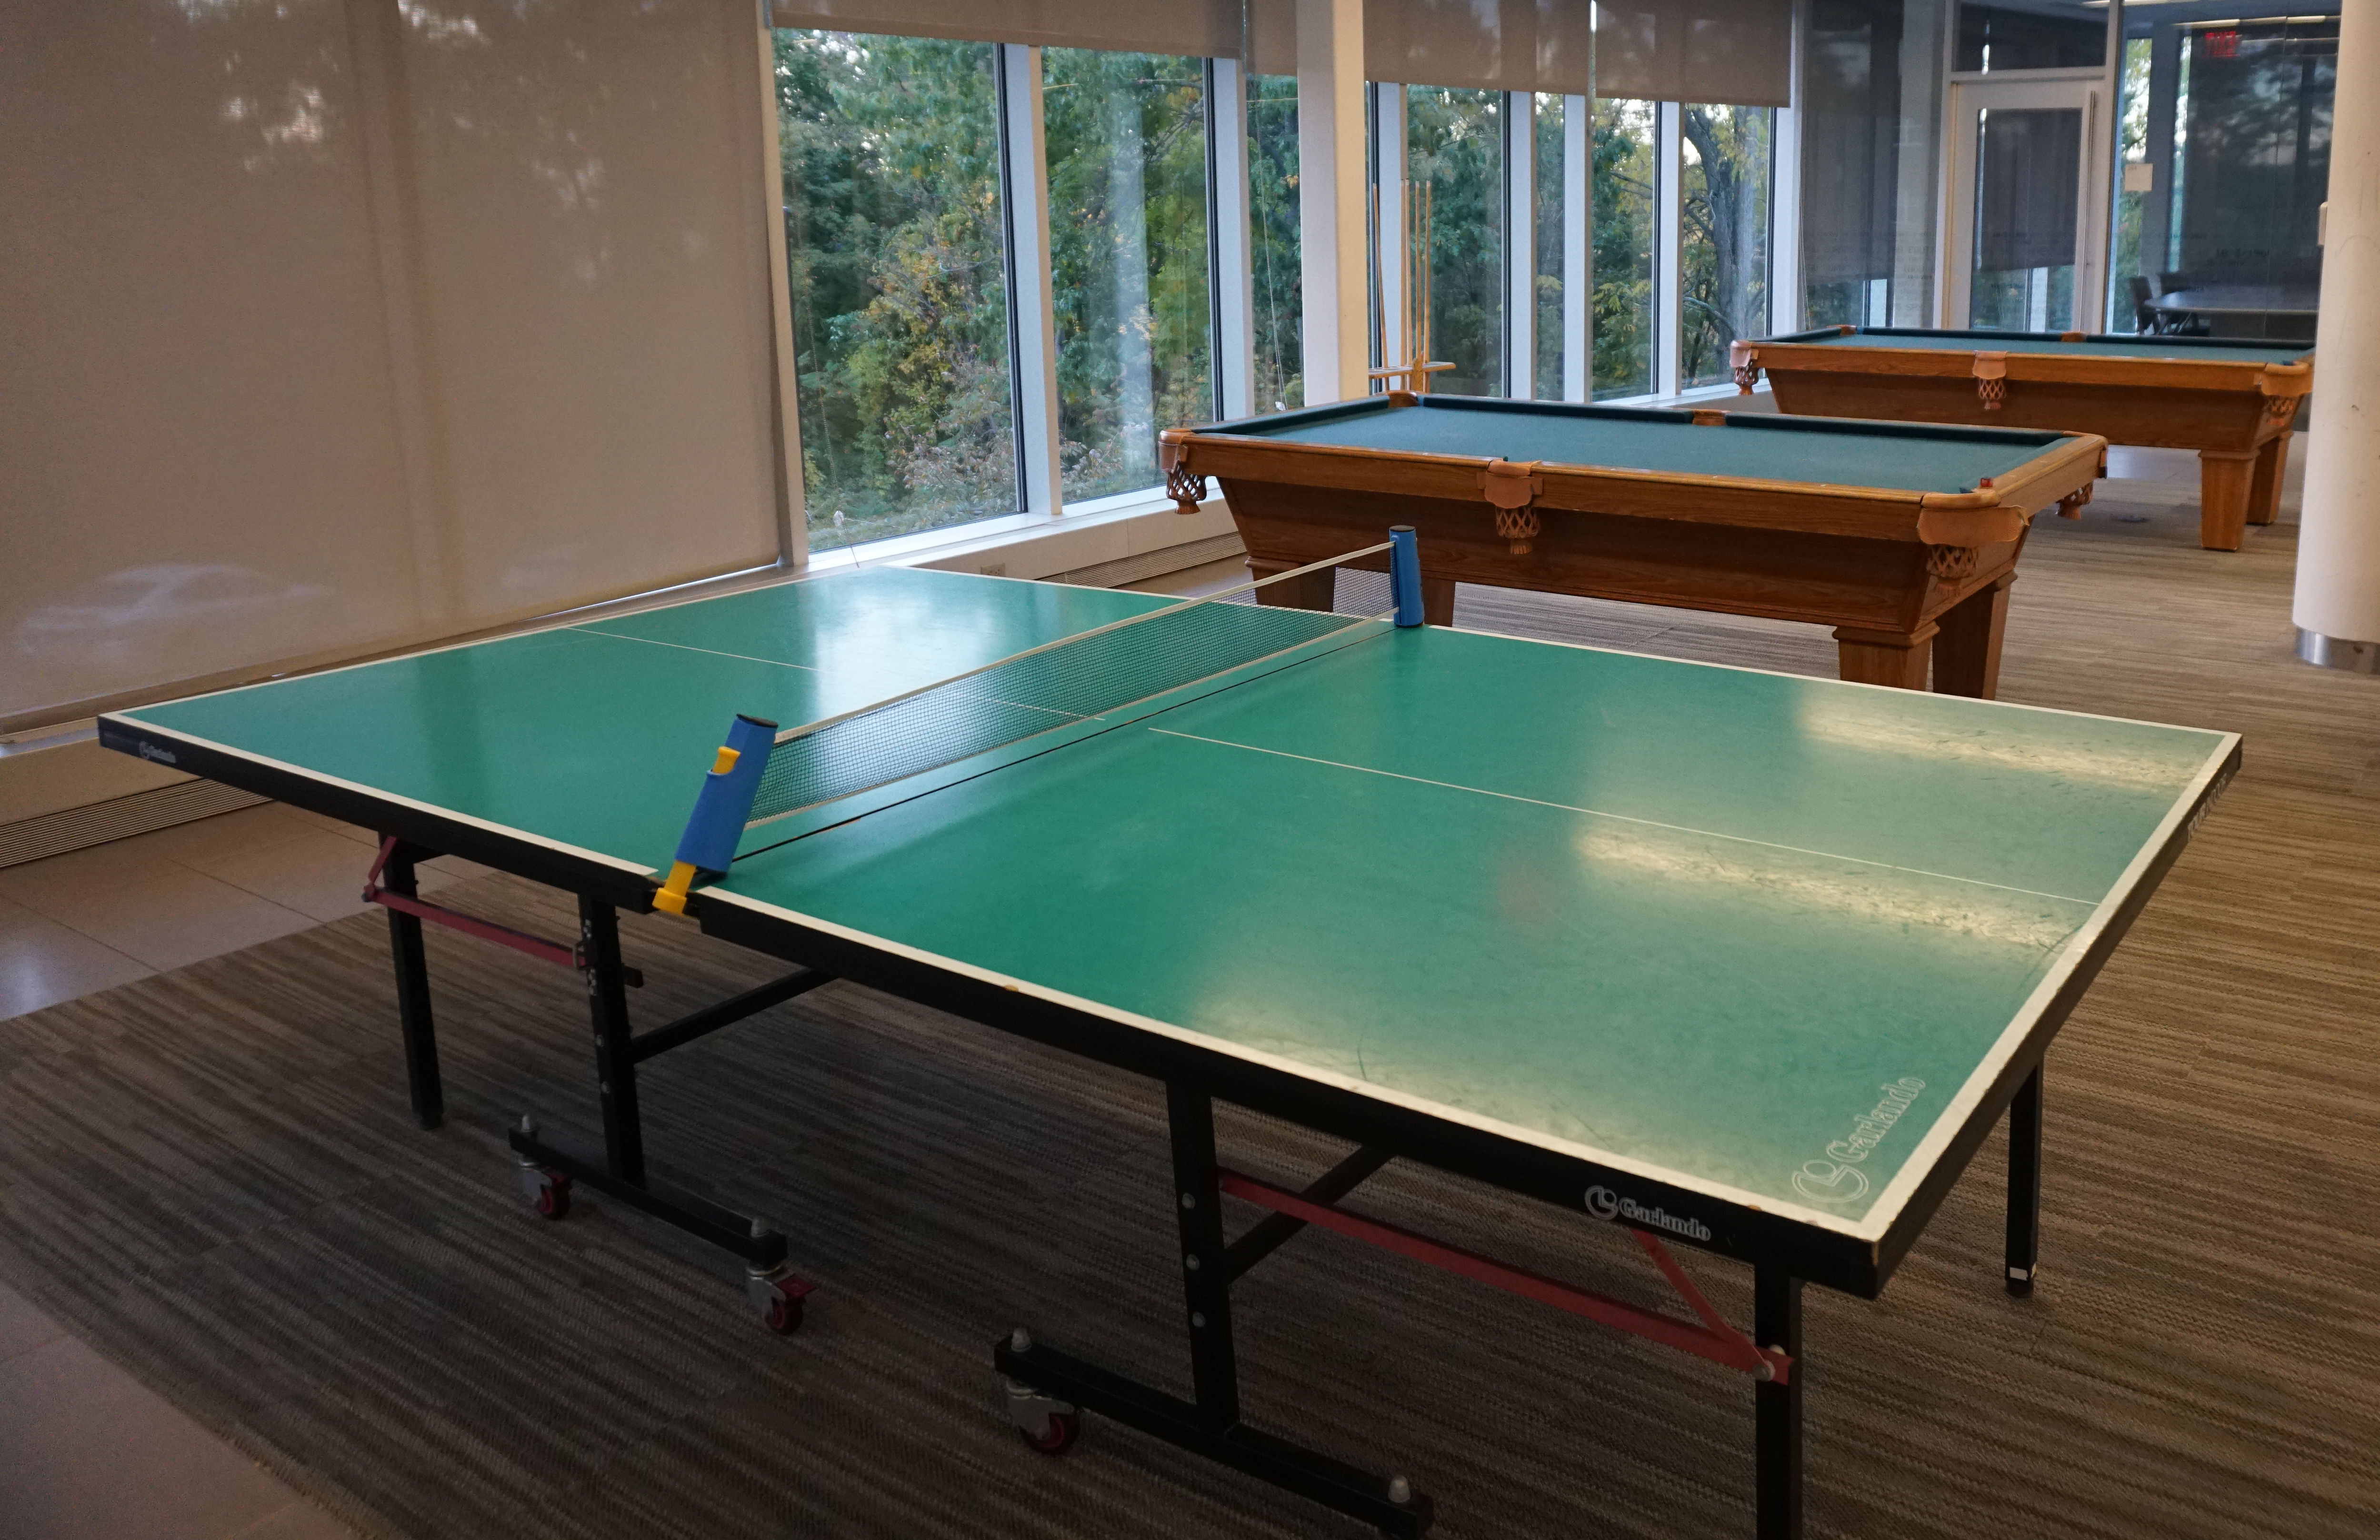 Table tennis and pool tables at Bentley University's student activities center